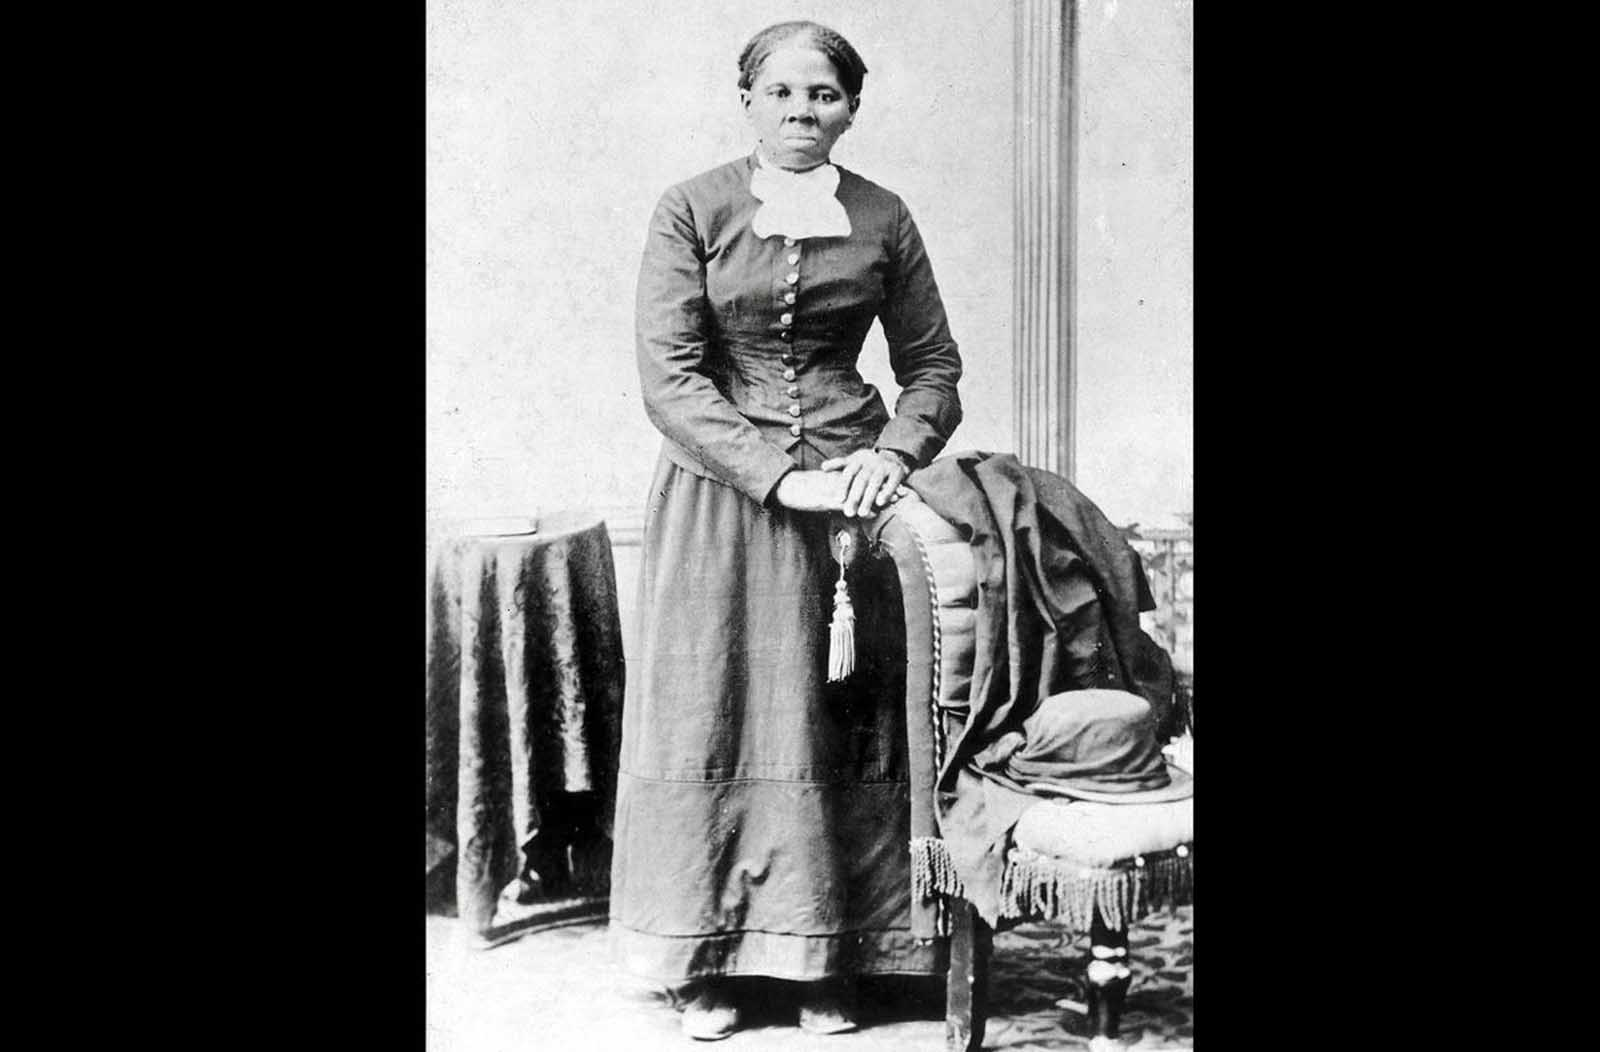 Harriet Tubman, in a photograph dating from 1860-75. Tubman was born into slavery, but escaped to Philadelphia in 1849, and provided valuable intelligence to Union forces during the Civil War.